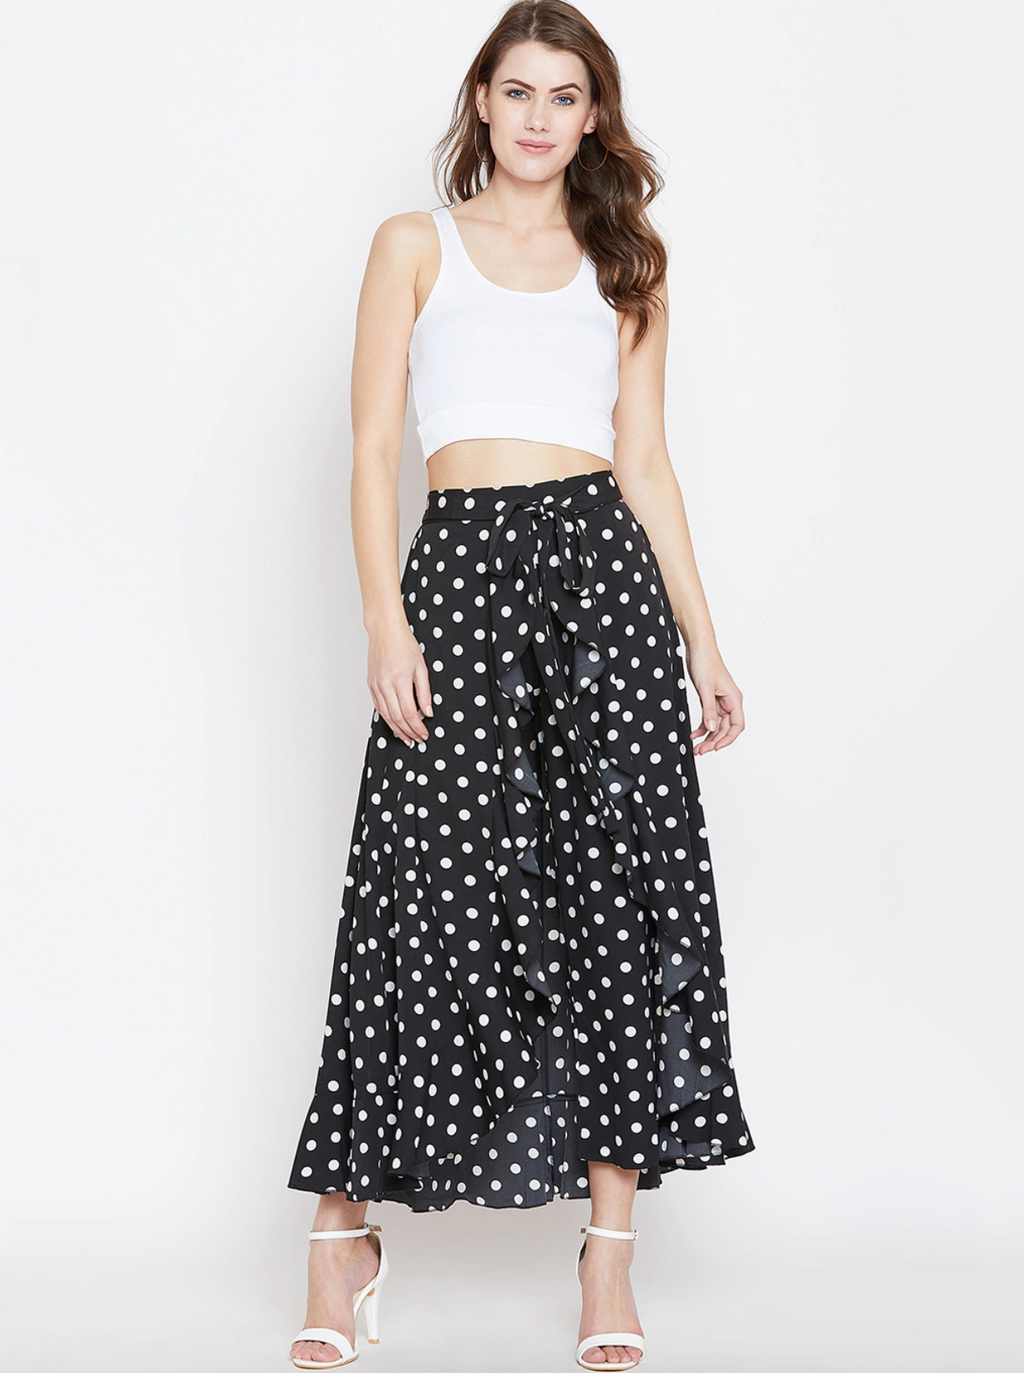 SKIRTY-PANT POLKA DOTS